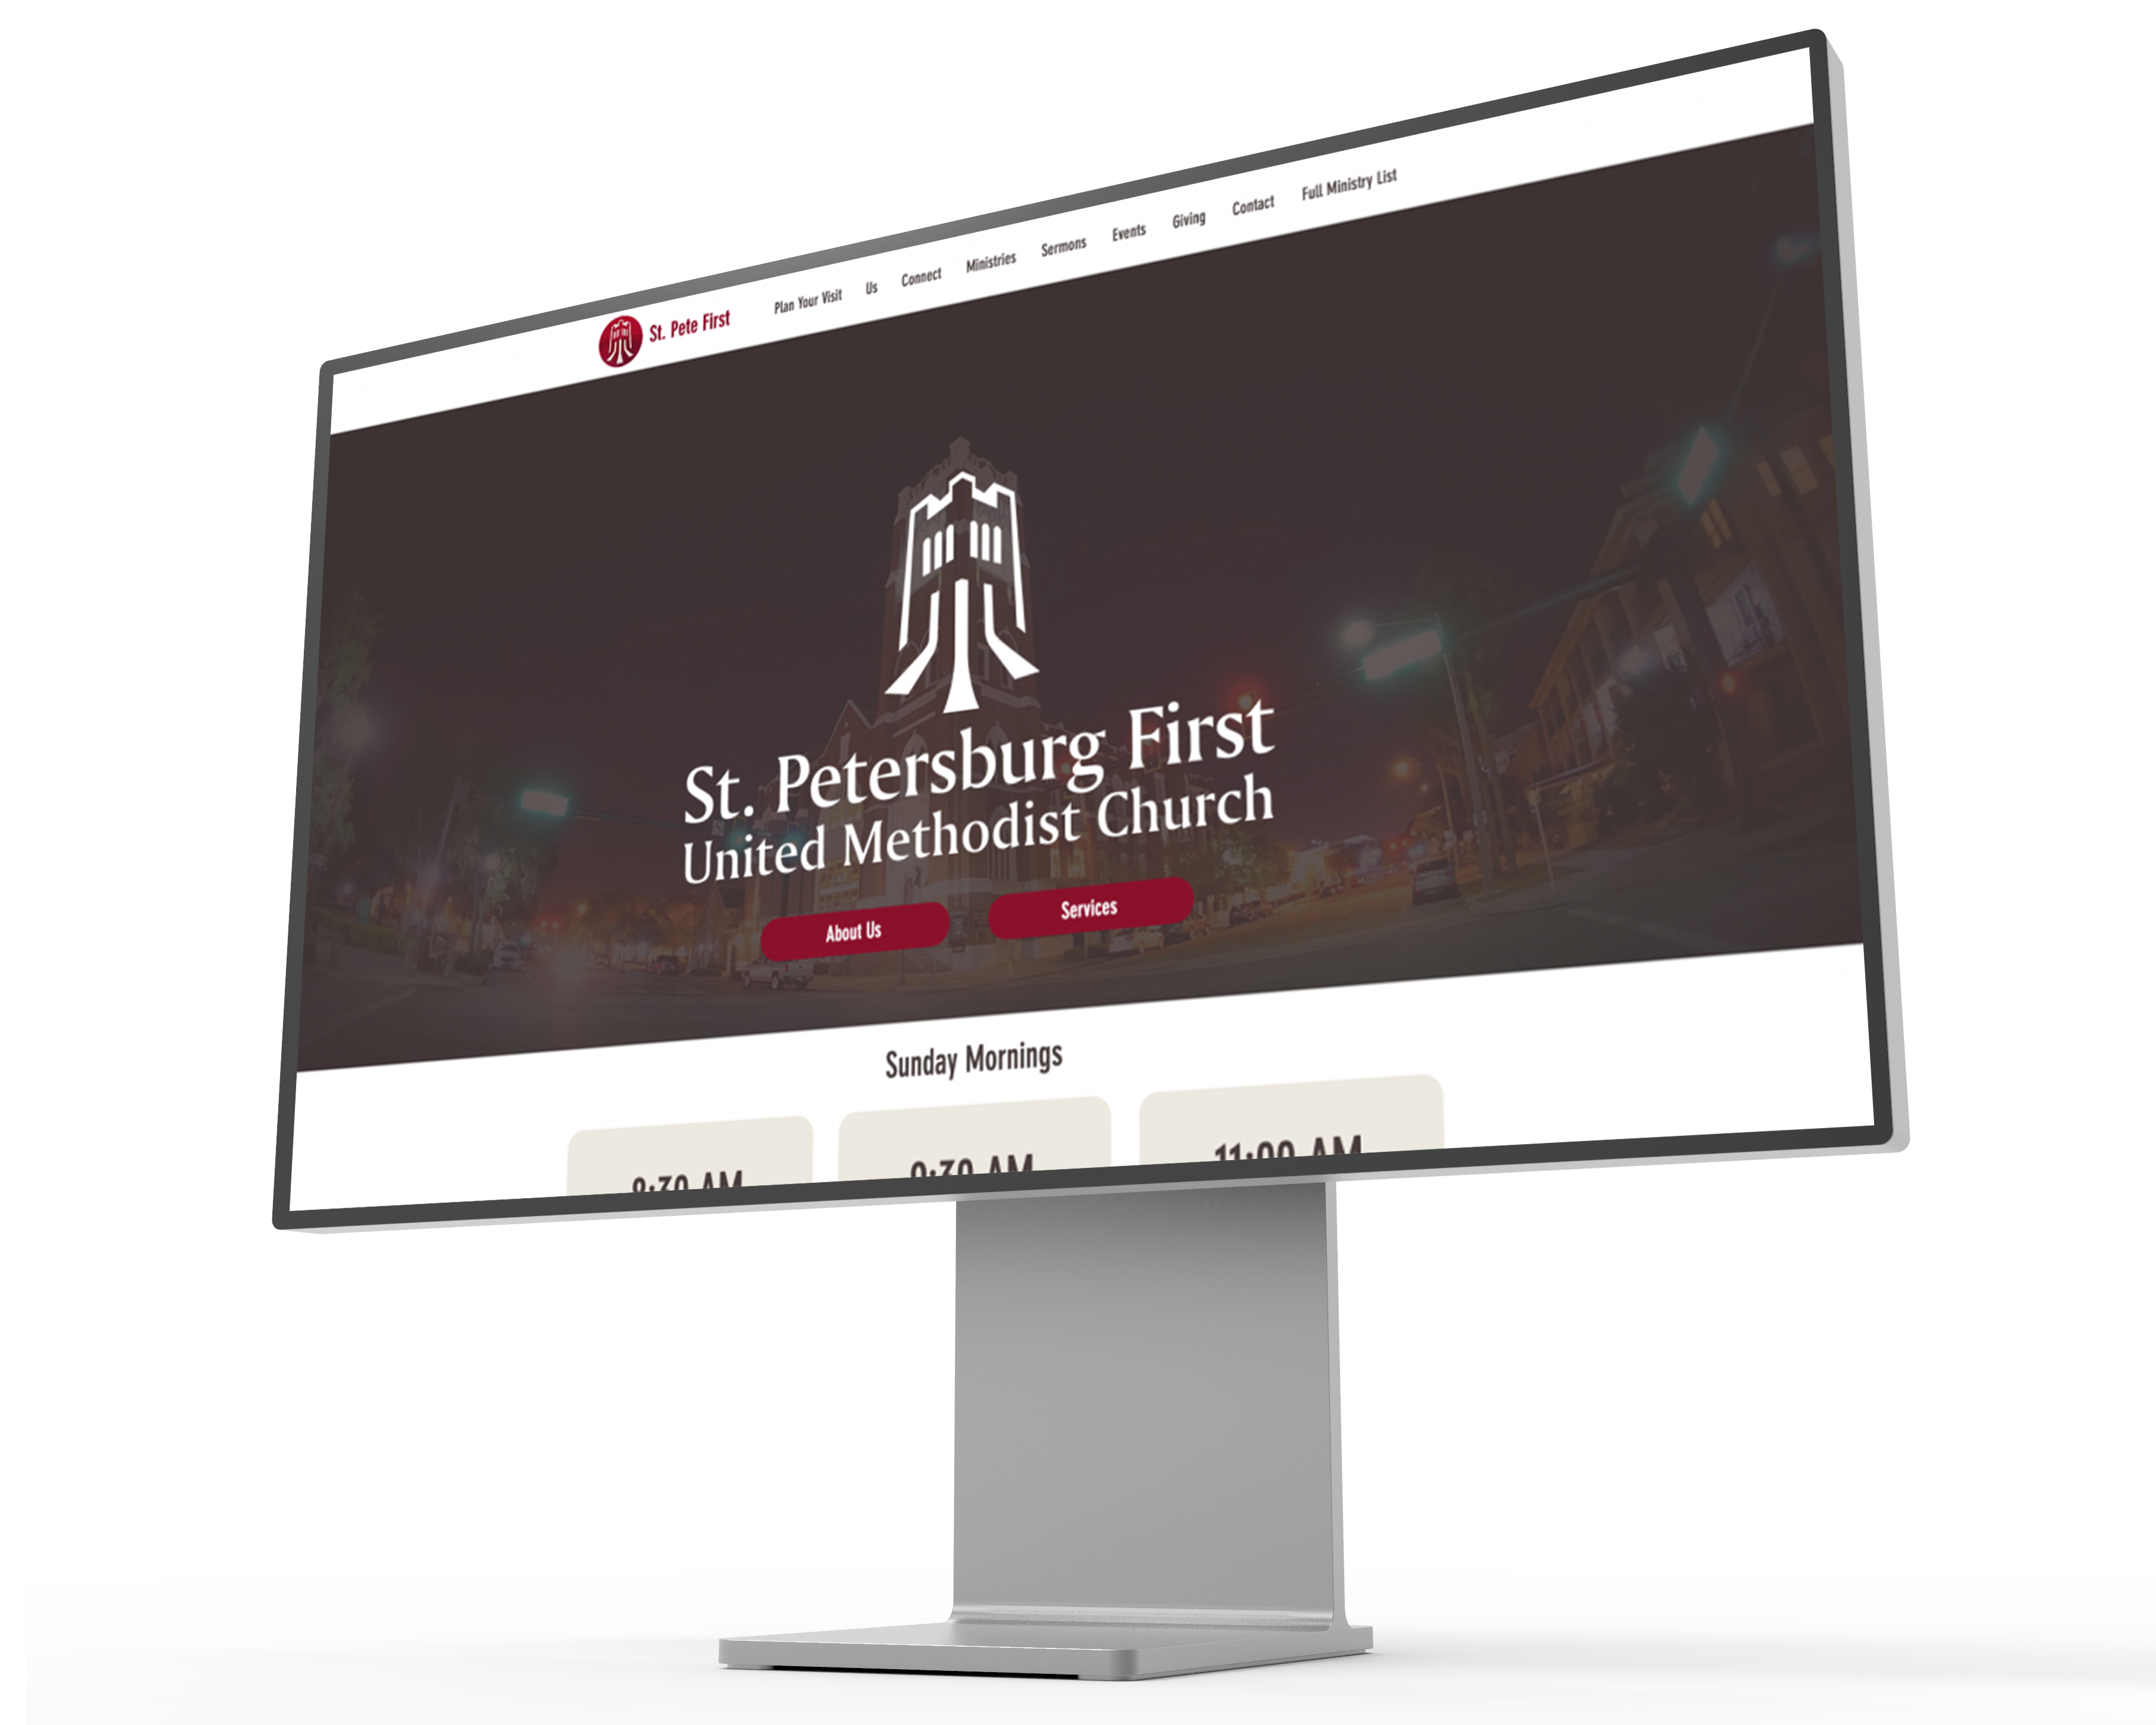 Image of the St. Petersburg First United Methodist Church website displayed on a mockup of a Pro XDR Display.